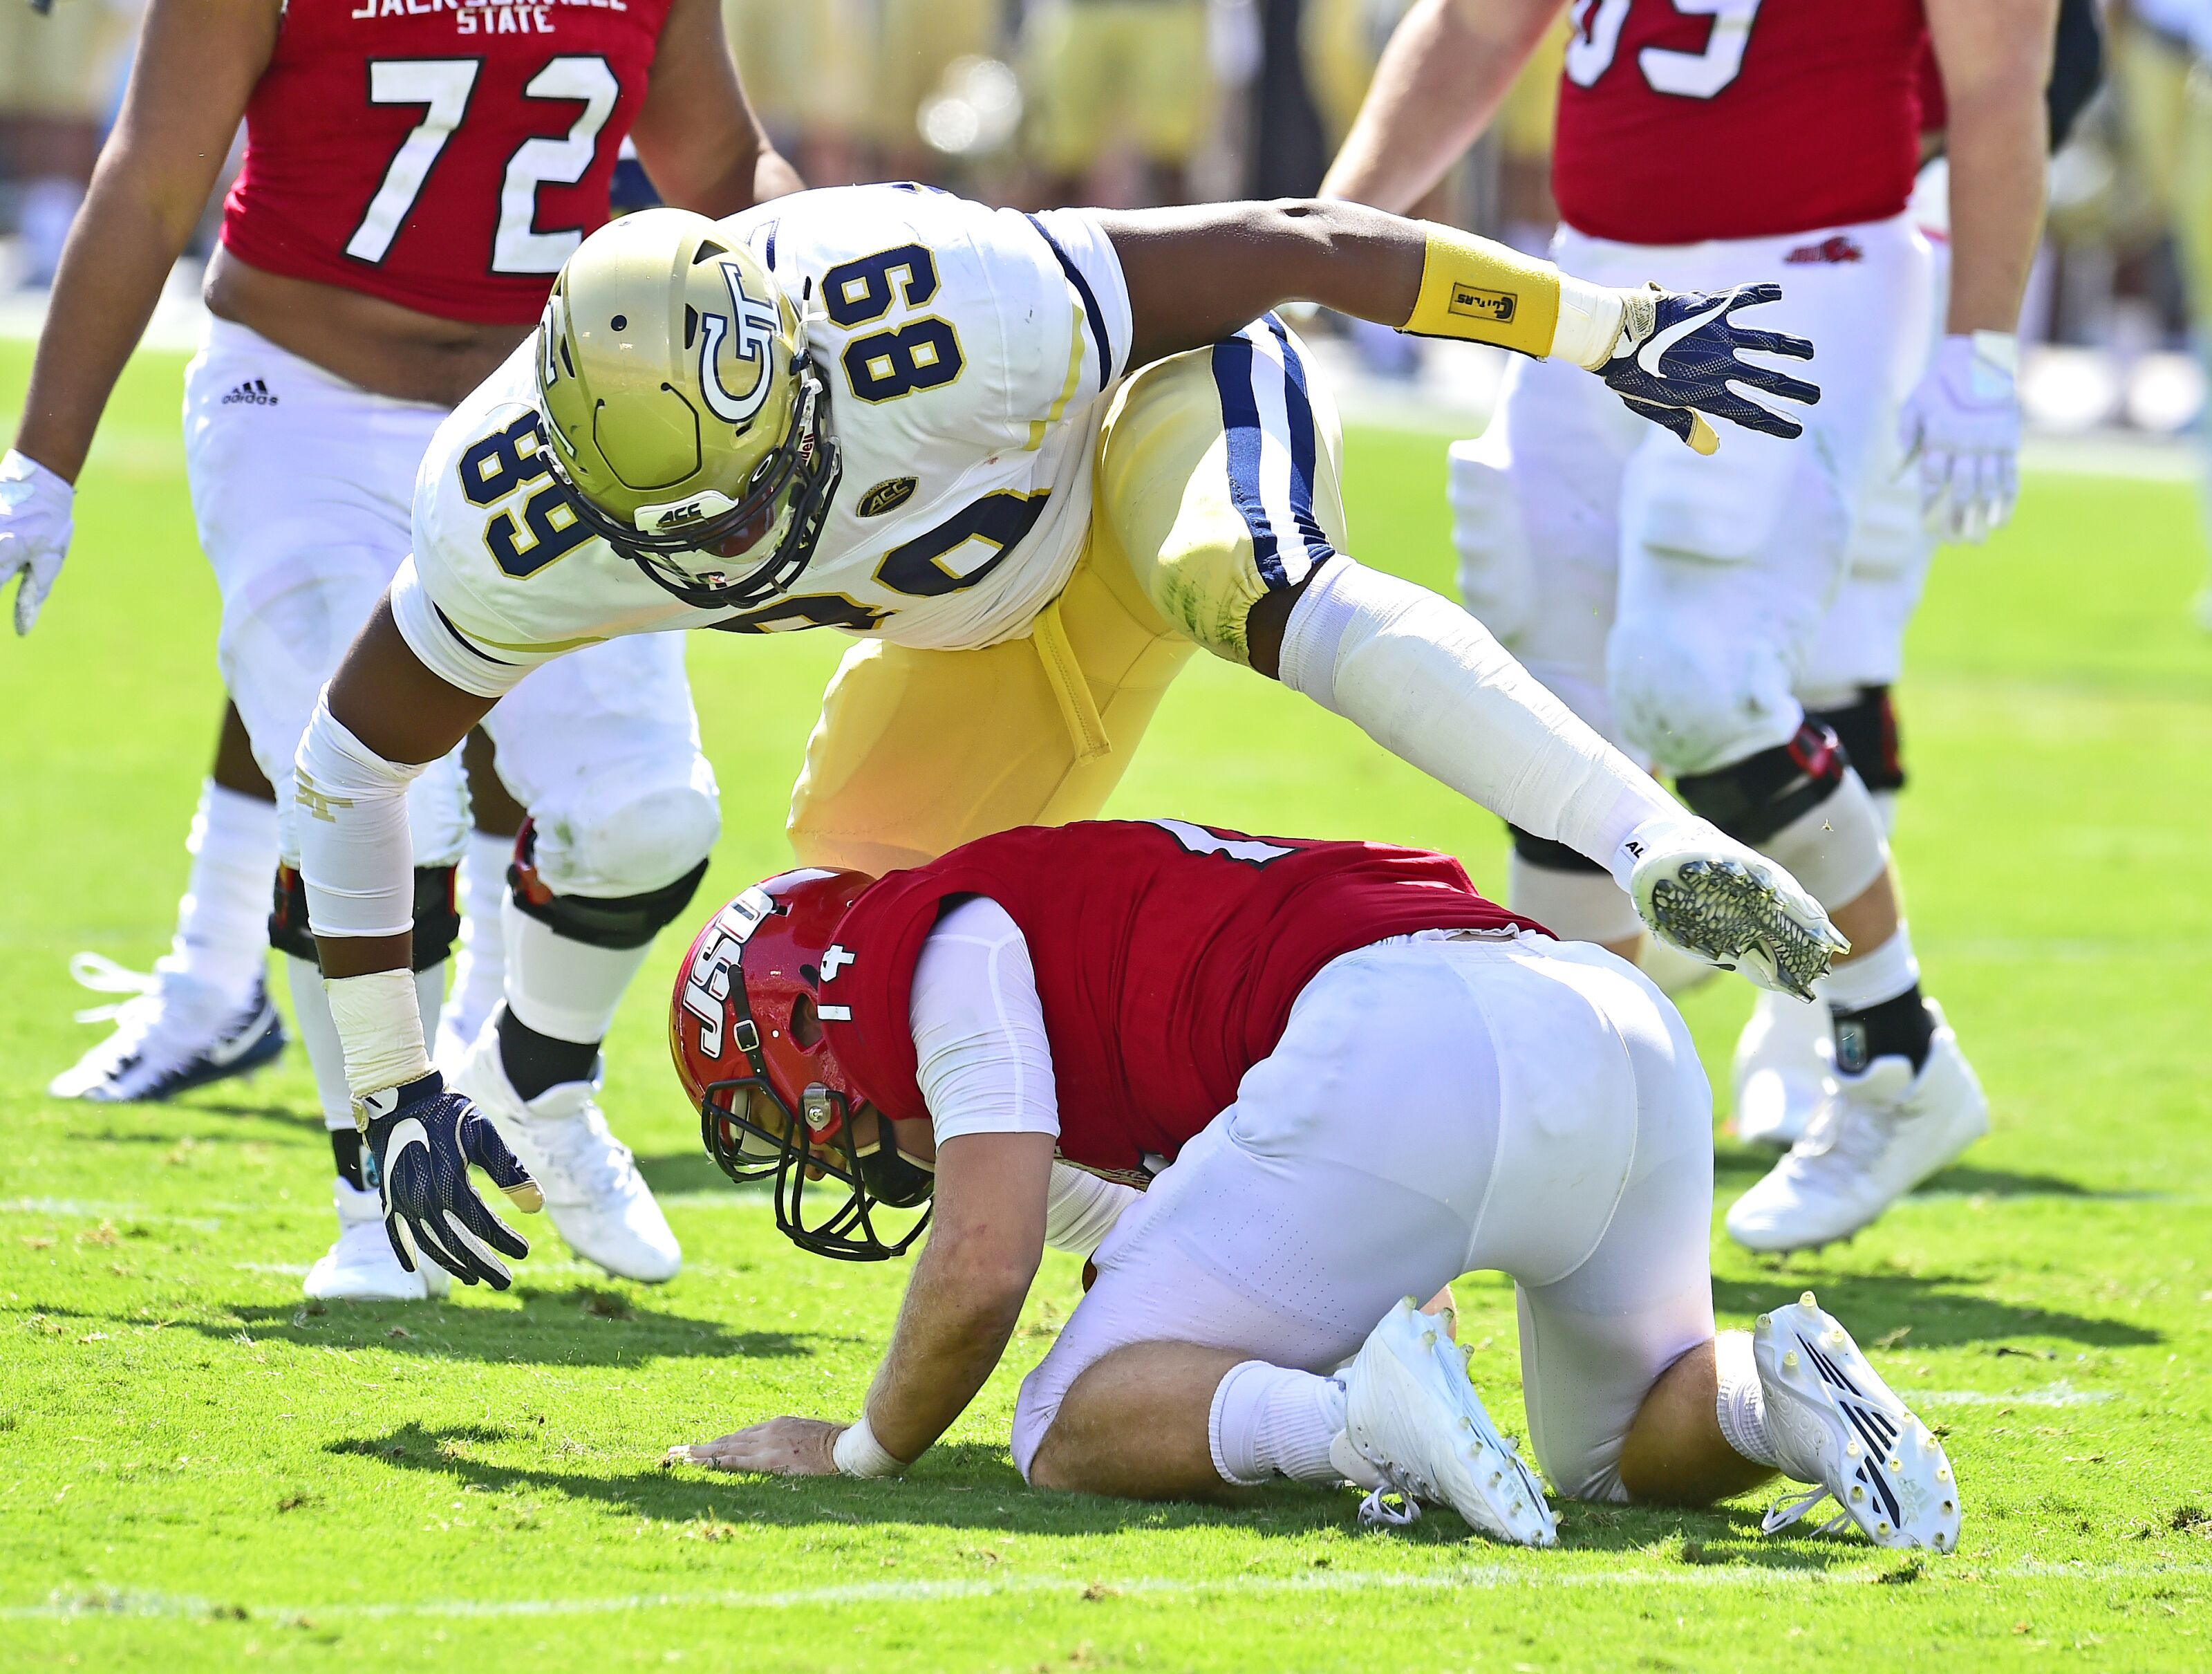 Georgia Tech Football: Previewing the Jackets spring defensive line group